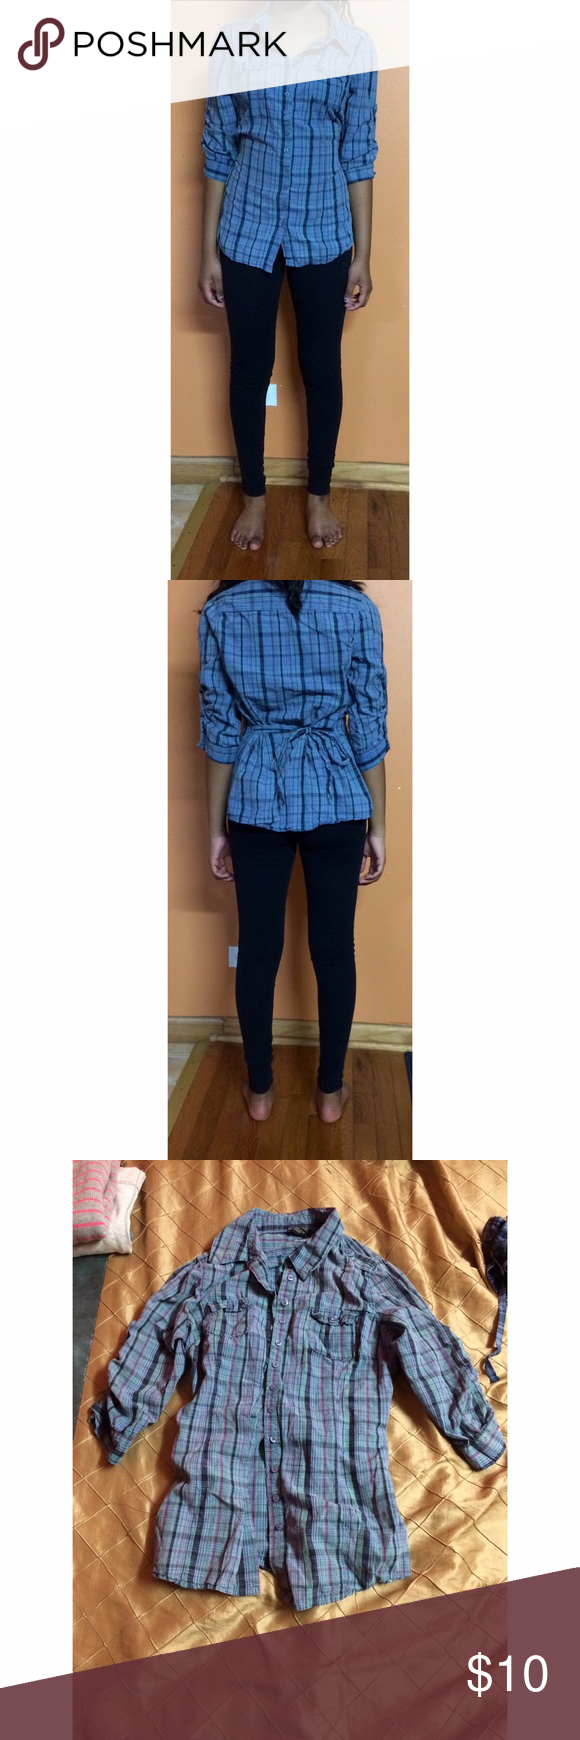 Wet Seal shirt small Small shirt from Wet Seal. Buttons in front, ties in back. Color is mainly blue with green and purple stripes. Good condition. Wet Seal Tops Button Down Shirts